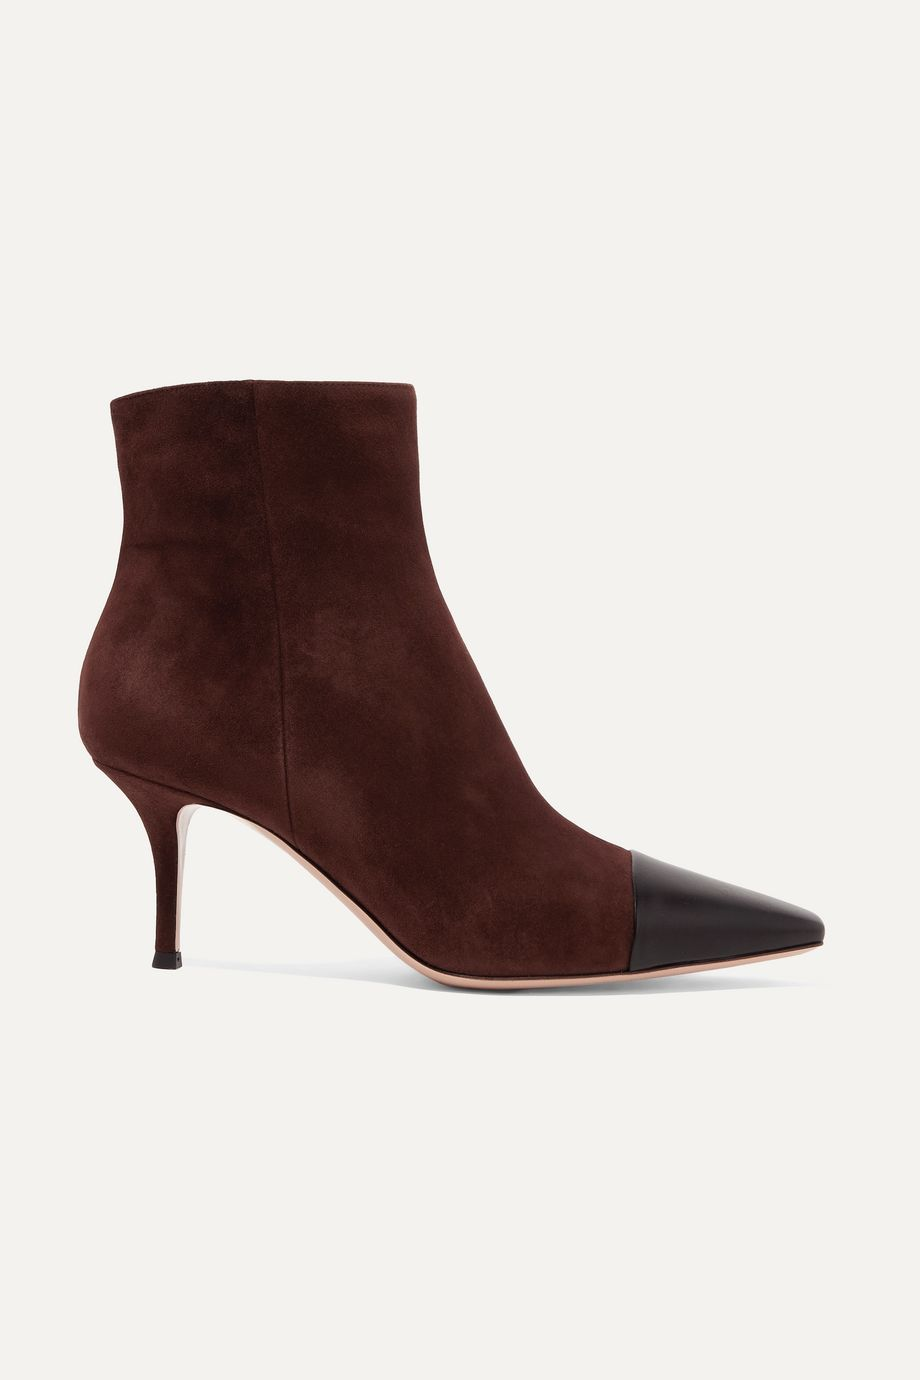 Gianvito Rossi 70 two-tone suede and leather ankle boots